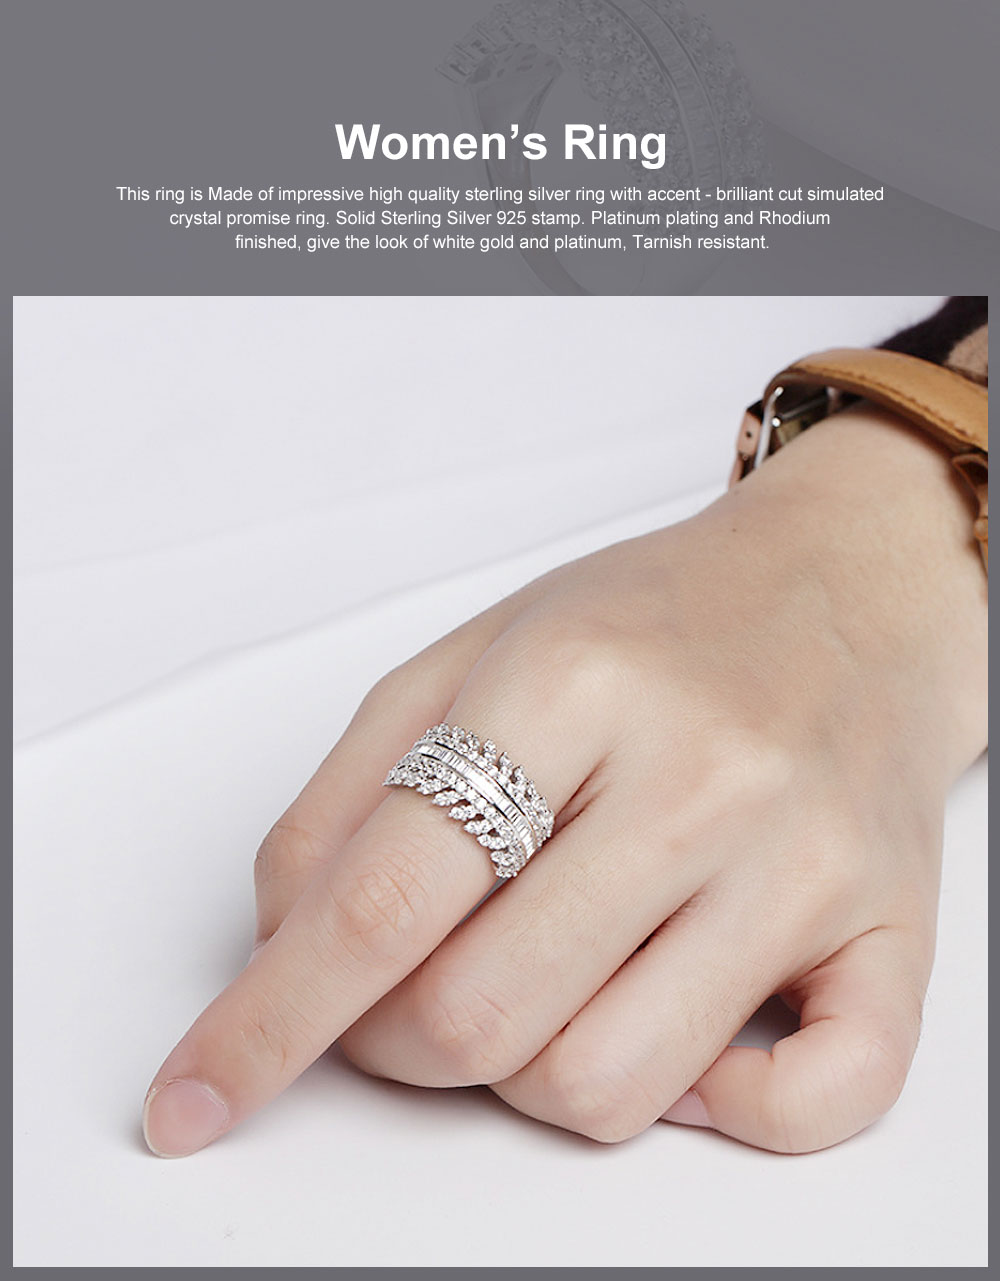 Women's Full Diamond Sterling Silver Jewelry Ring, 925 Sterling Silver Round Cut Crystals Rings for women 0